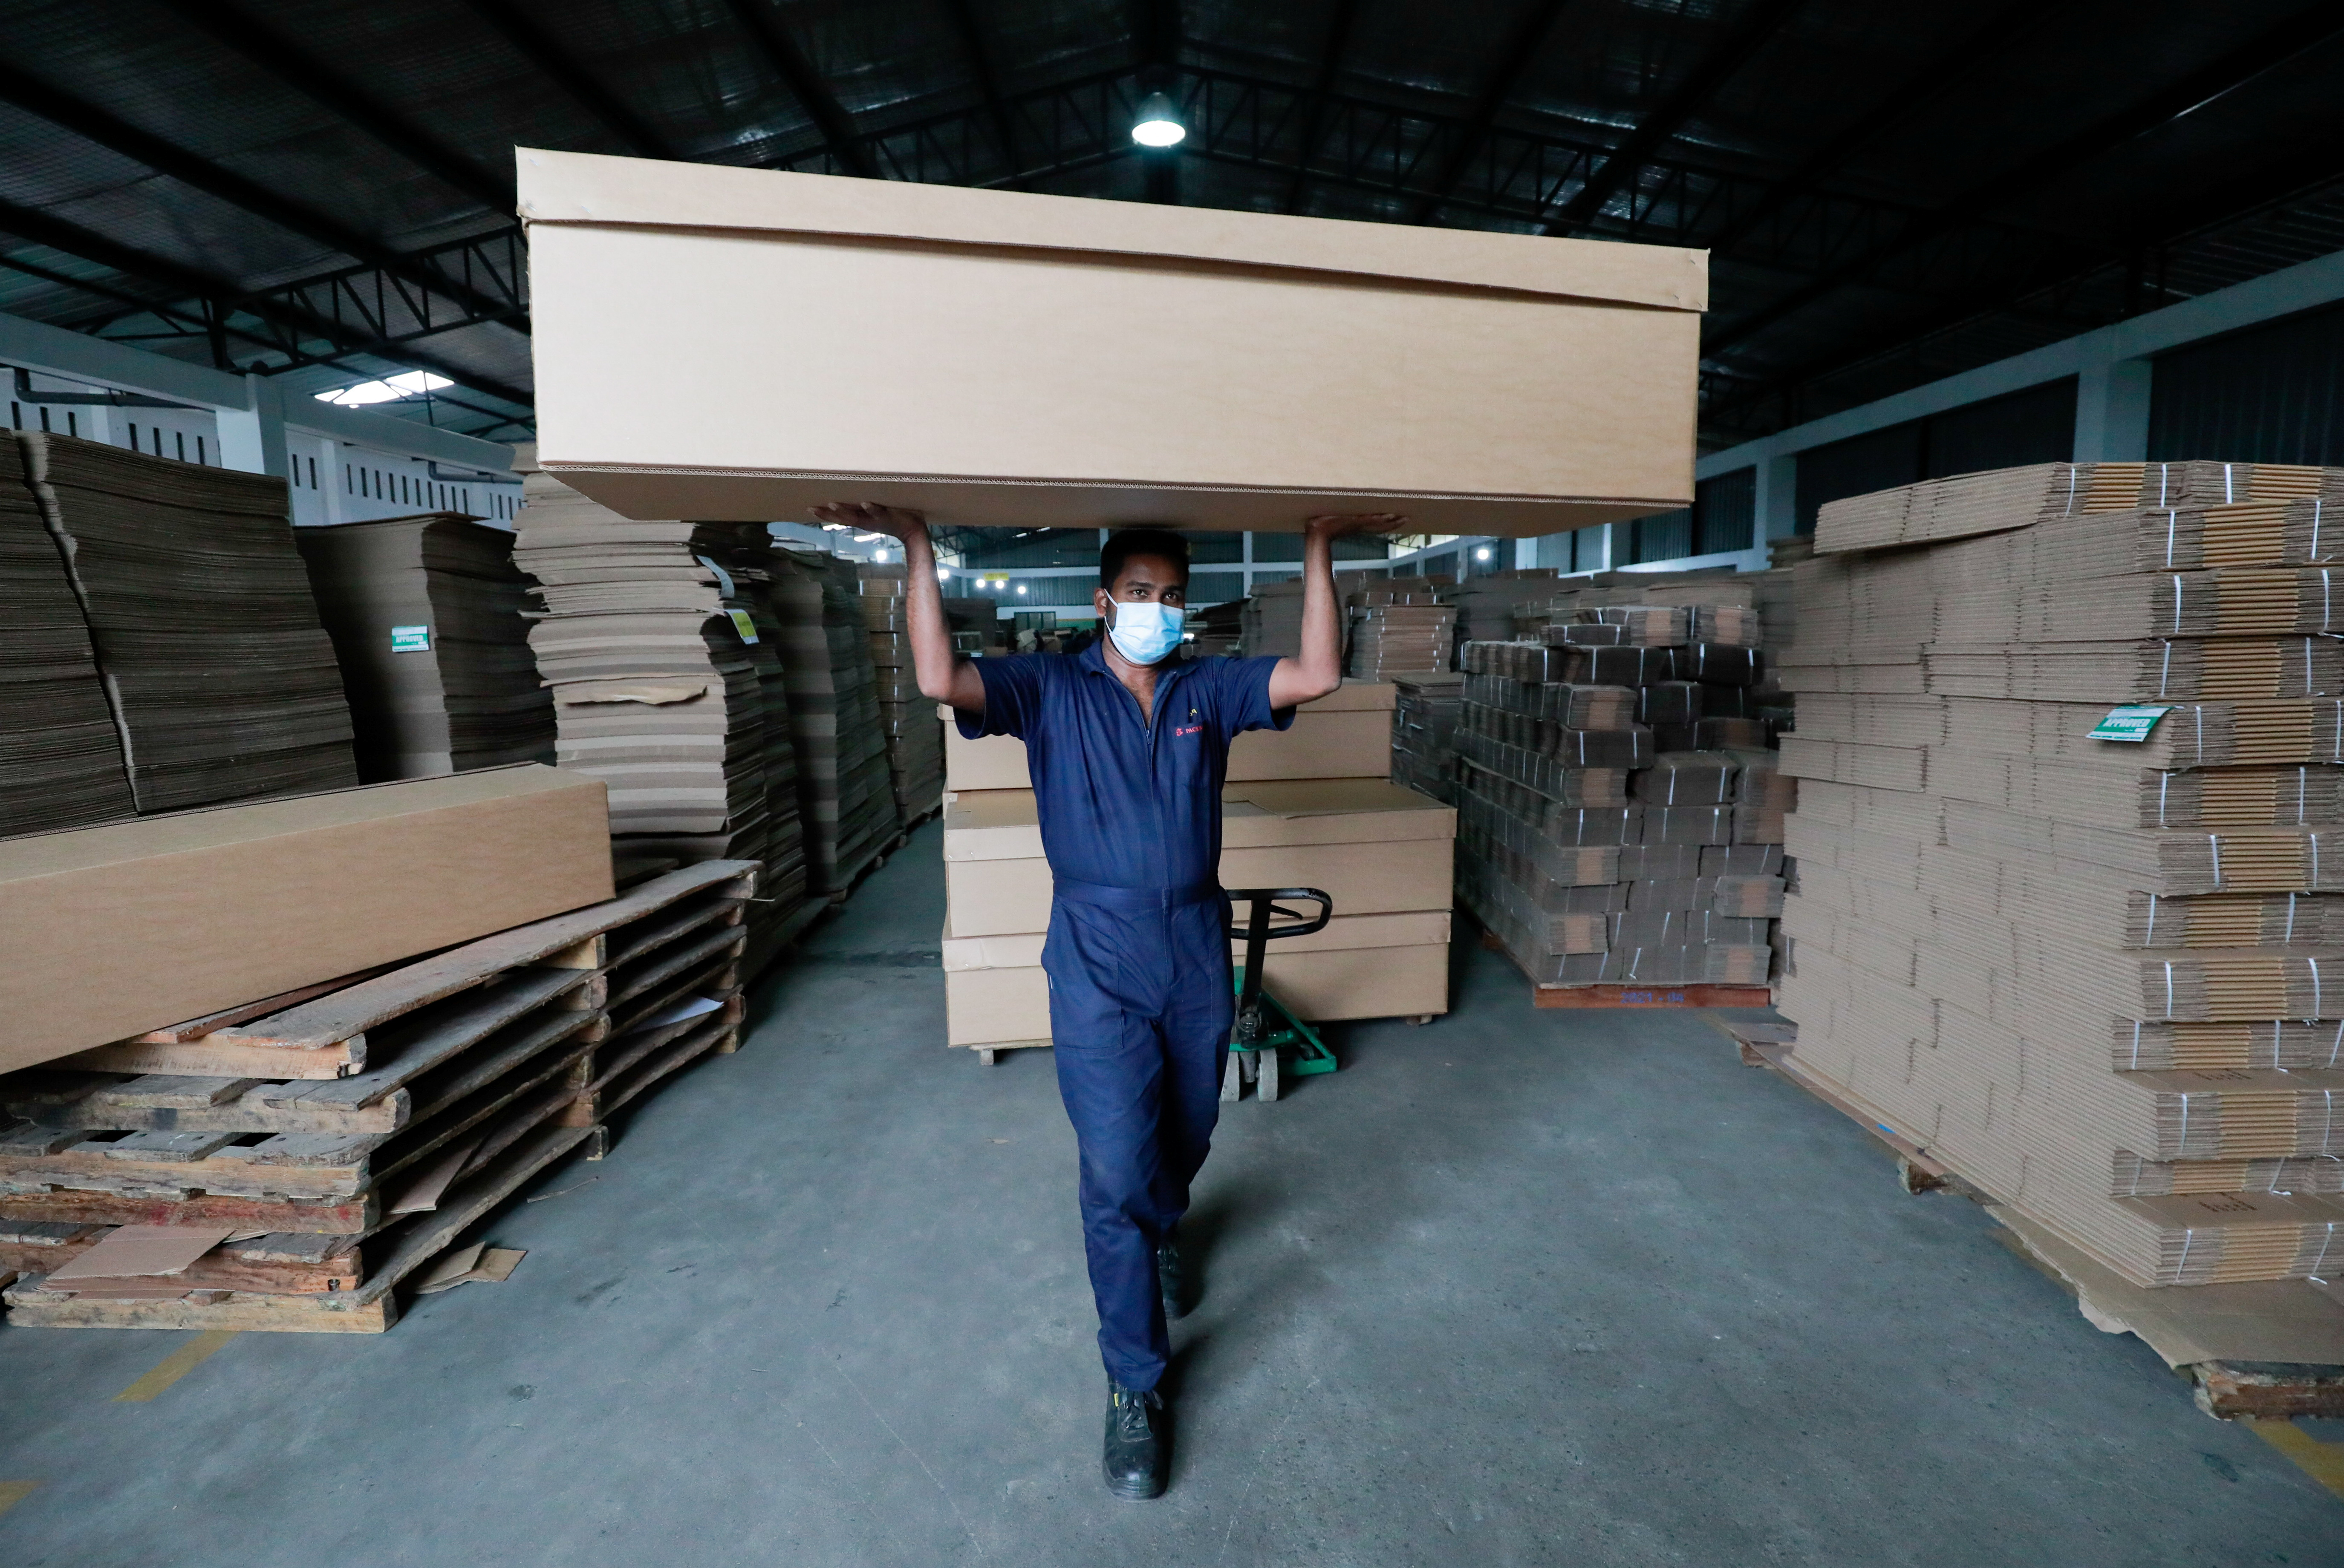 A worker carries a cardboard coffin to a truck at a factory, amid the coronavirus disease (COVID-19) pandemic, on the outskirts of Colombo, Sri Lanka August 7, 2021. Picture taken August 7, 2021. REUTERS/Dinuka Liyanawatte